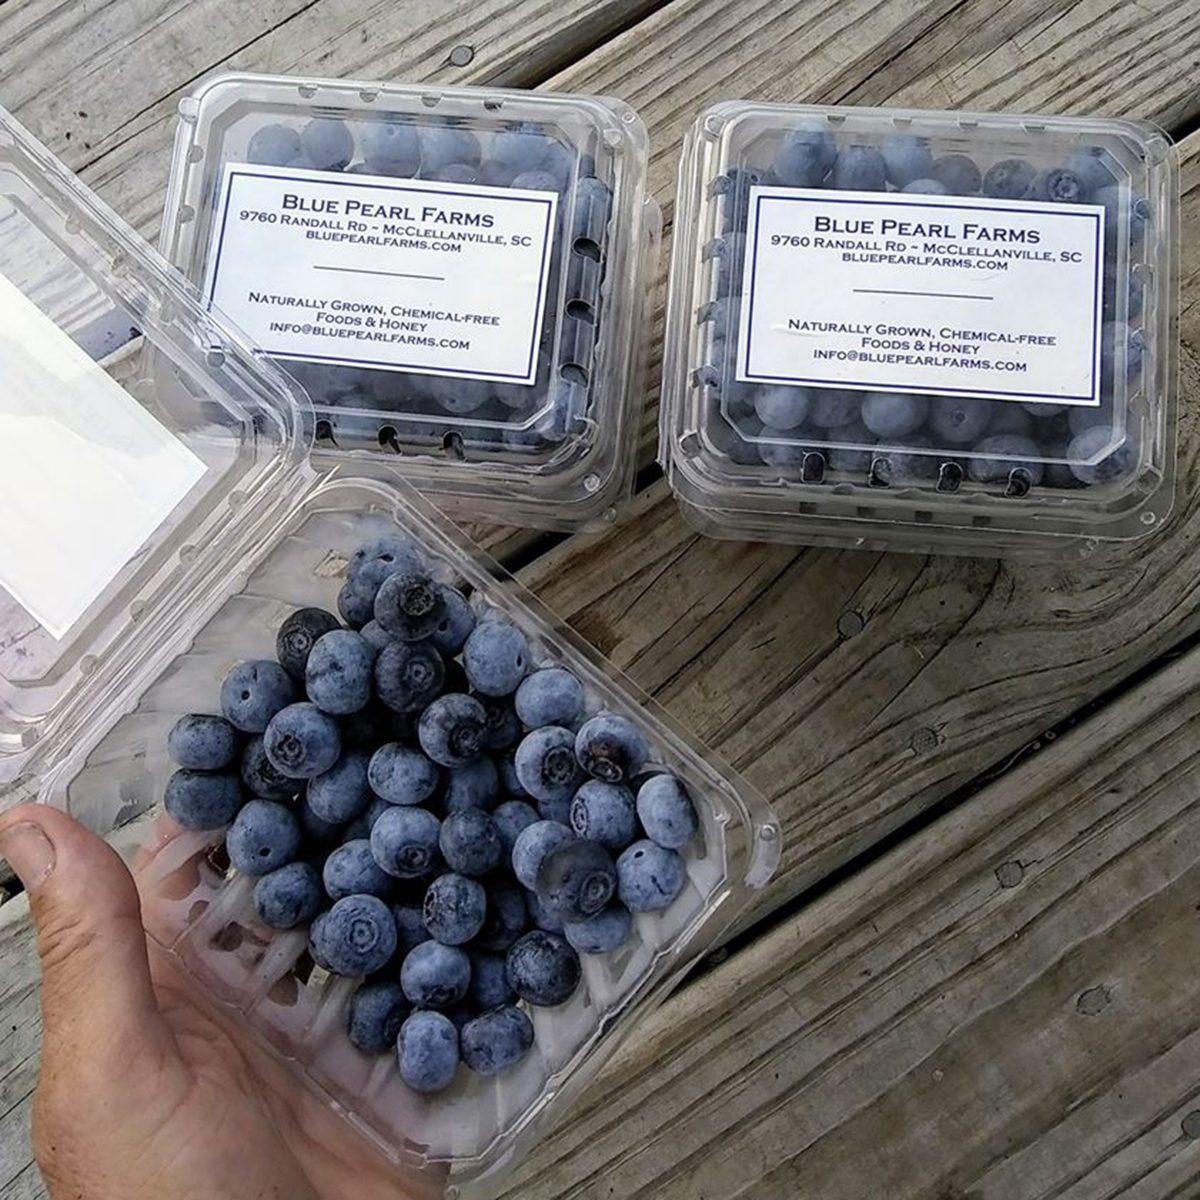 Packages of blueberries